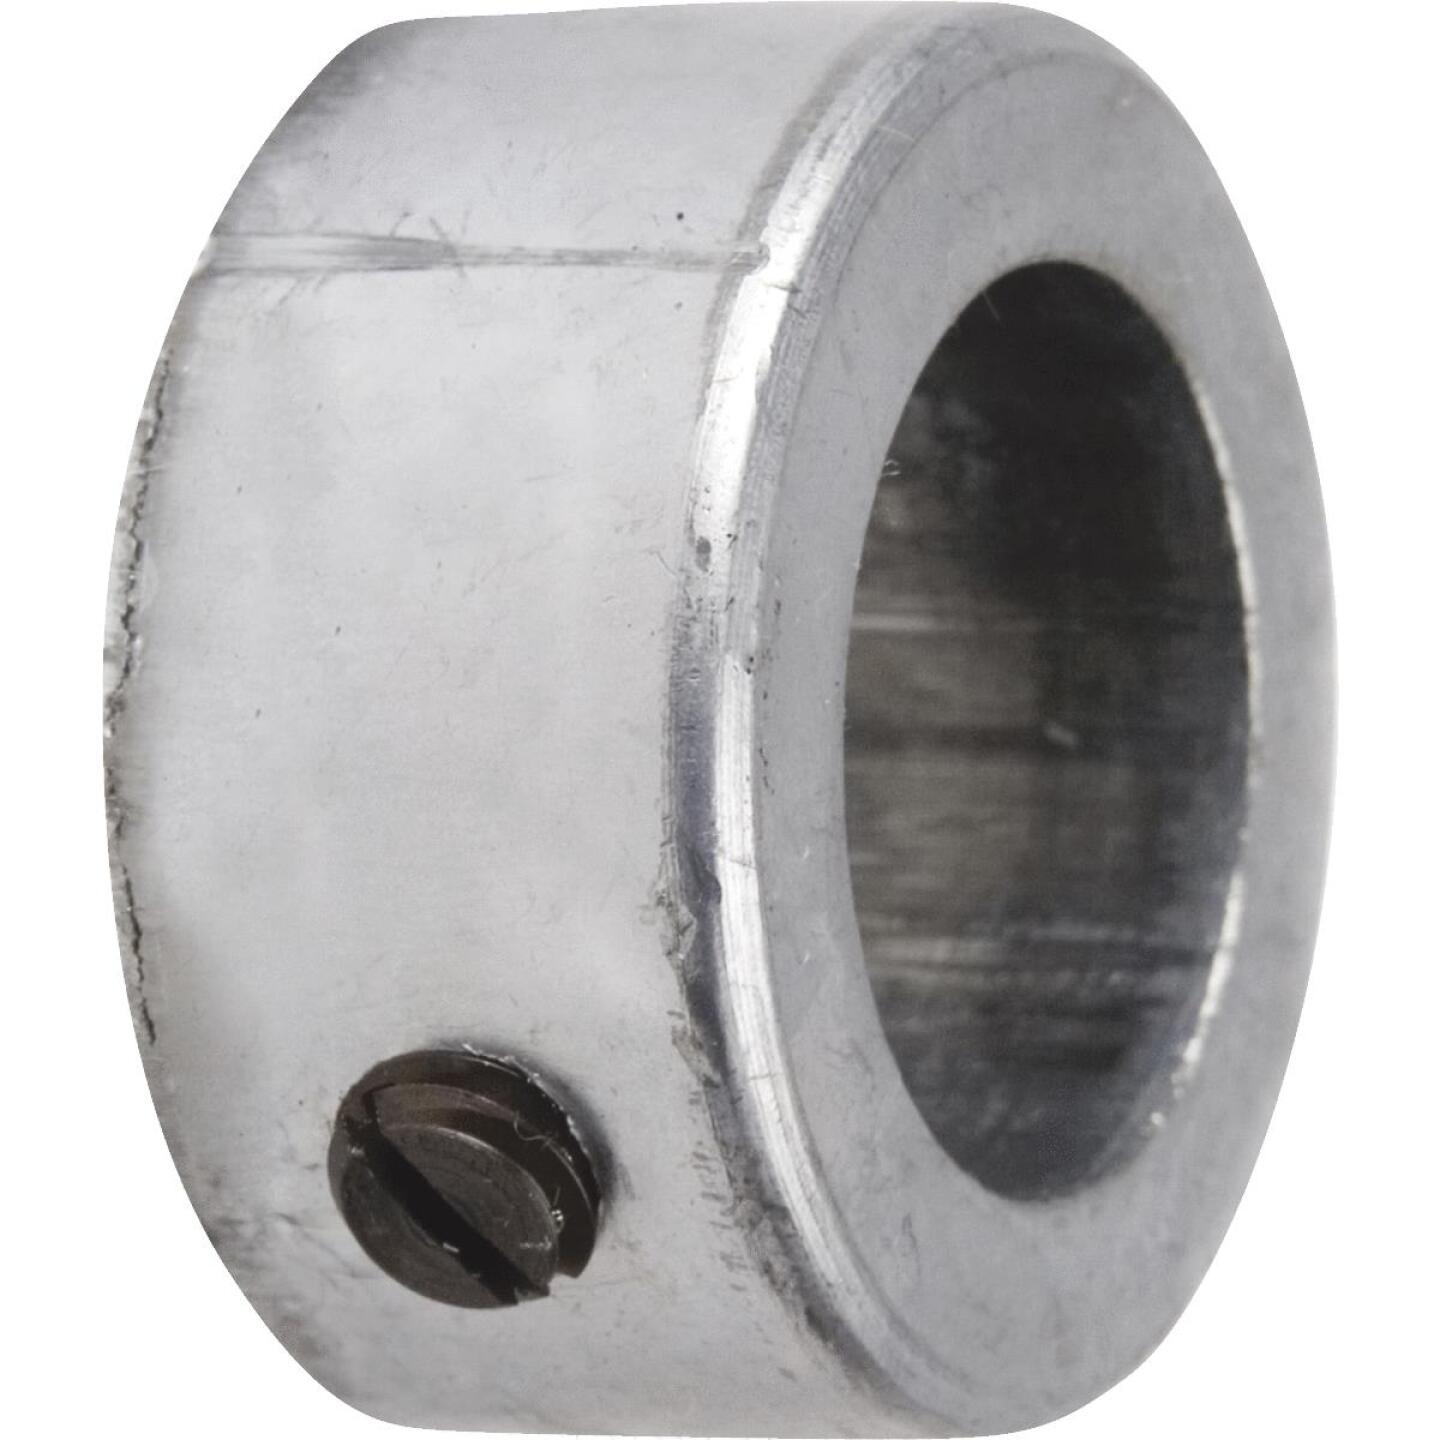 Chicago Die Casting 5/16 In. Shaft Collar Image 1